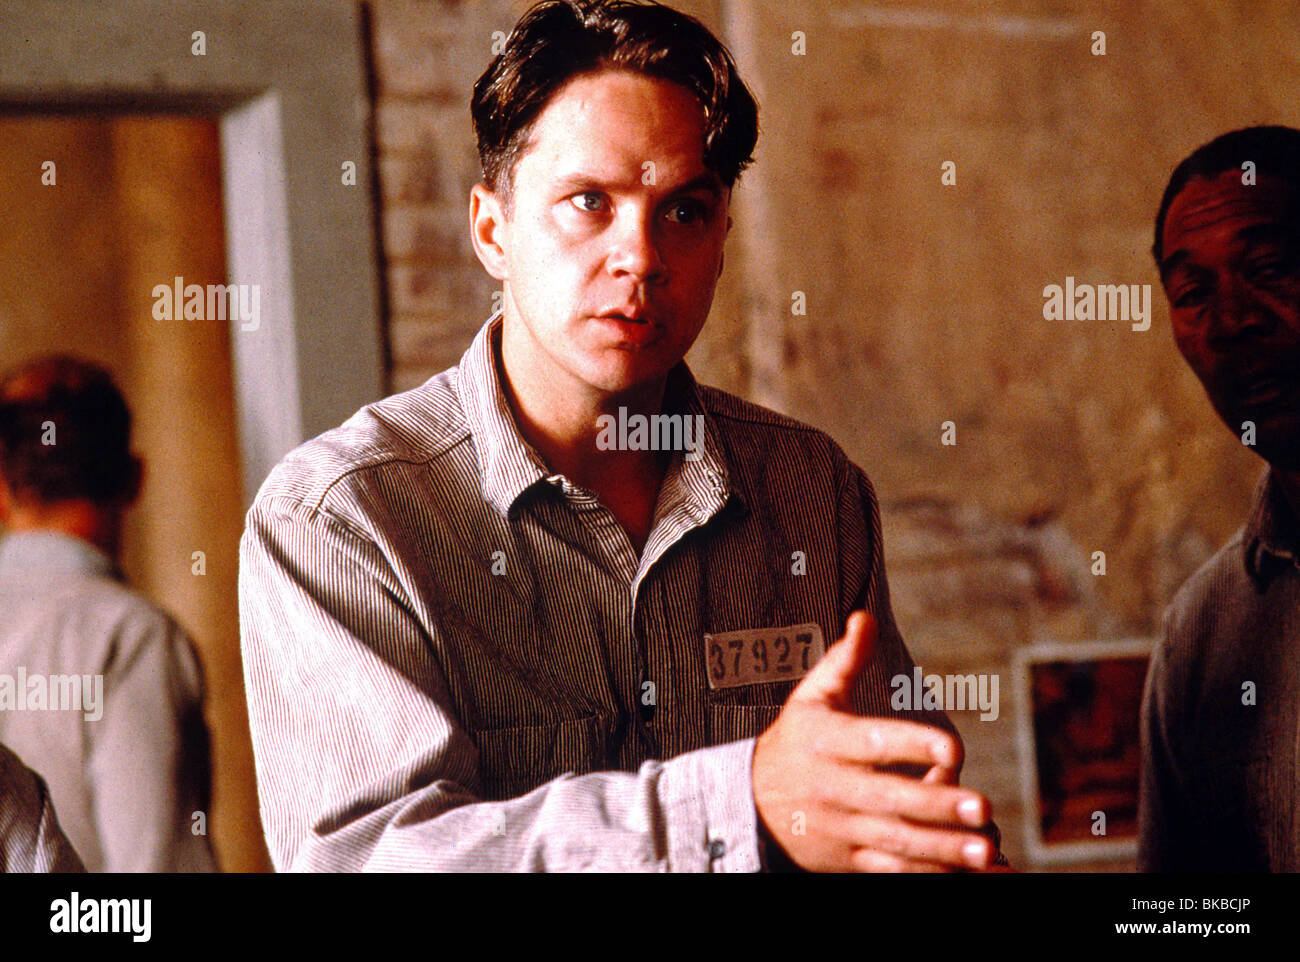 THE SHAWSHANK REDEMPTION (1994) TIM ROBBINS SHWK 012 - Stock Image